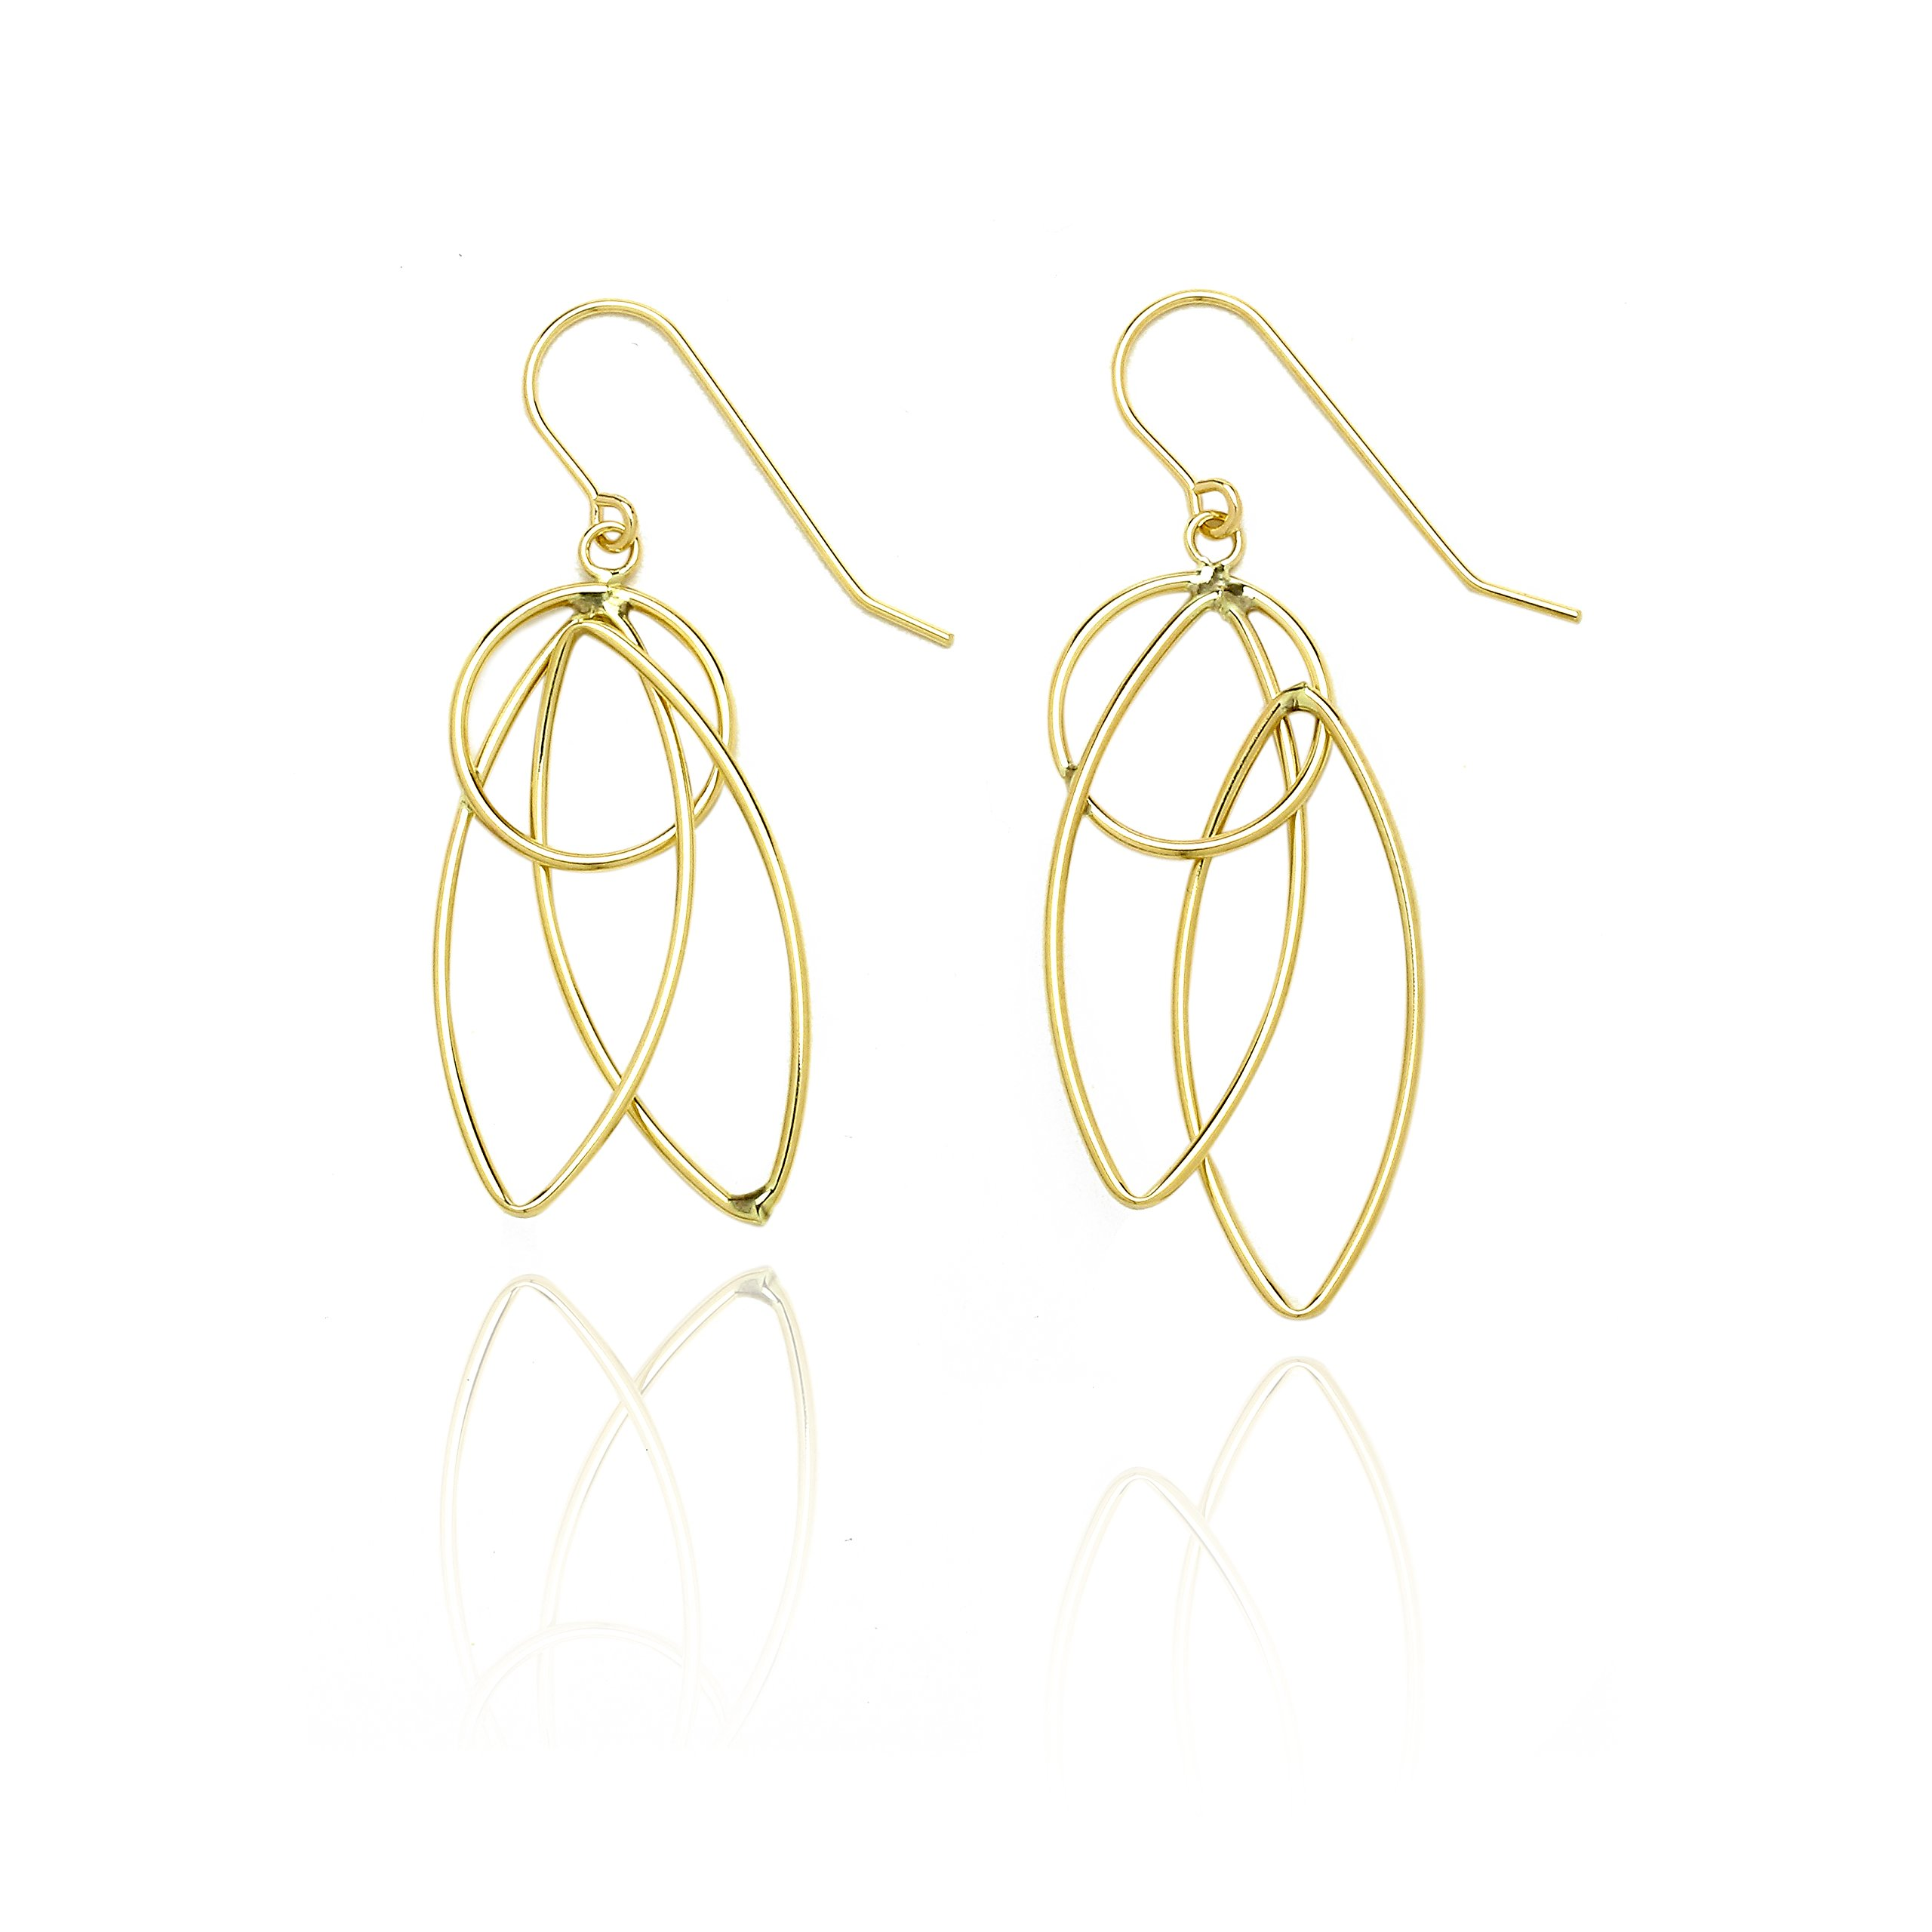 14k Yellow Gold Pointing Oval and Circle Dangling Drop Earring in Gift Box for Women and Teen Girls